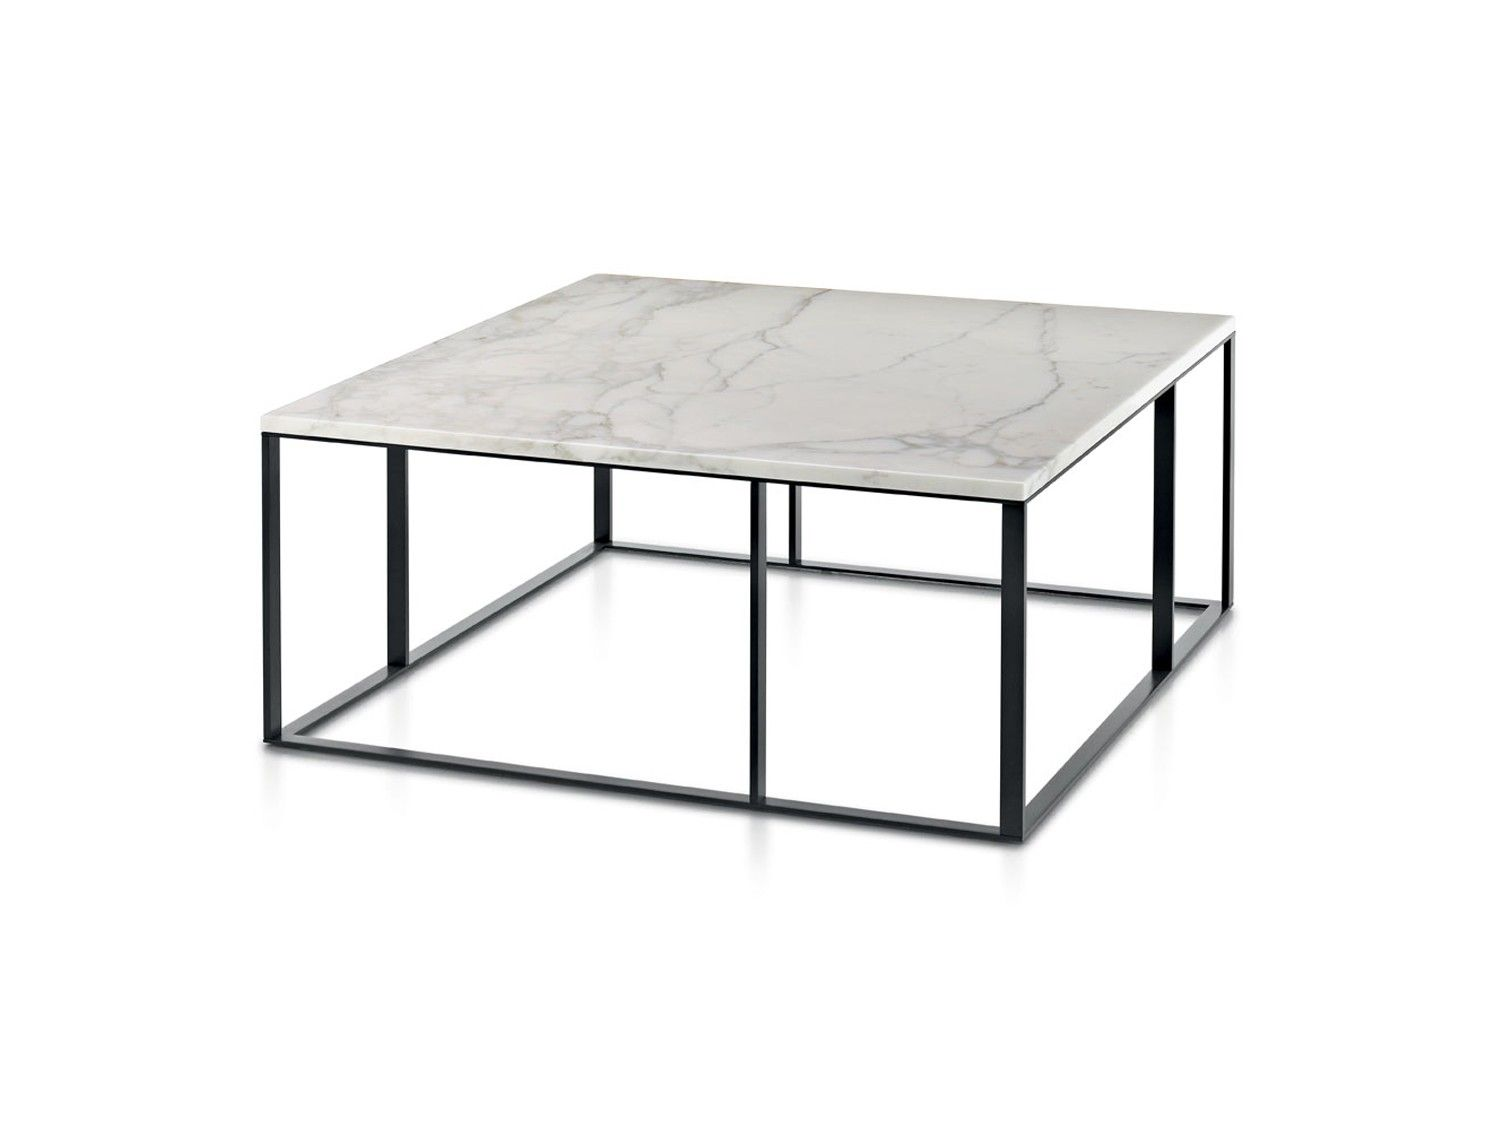 Maxalto Lithos Coffee Table by Antonio Citterio Chaplins Maxalto